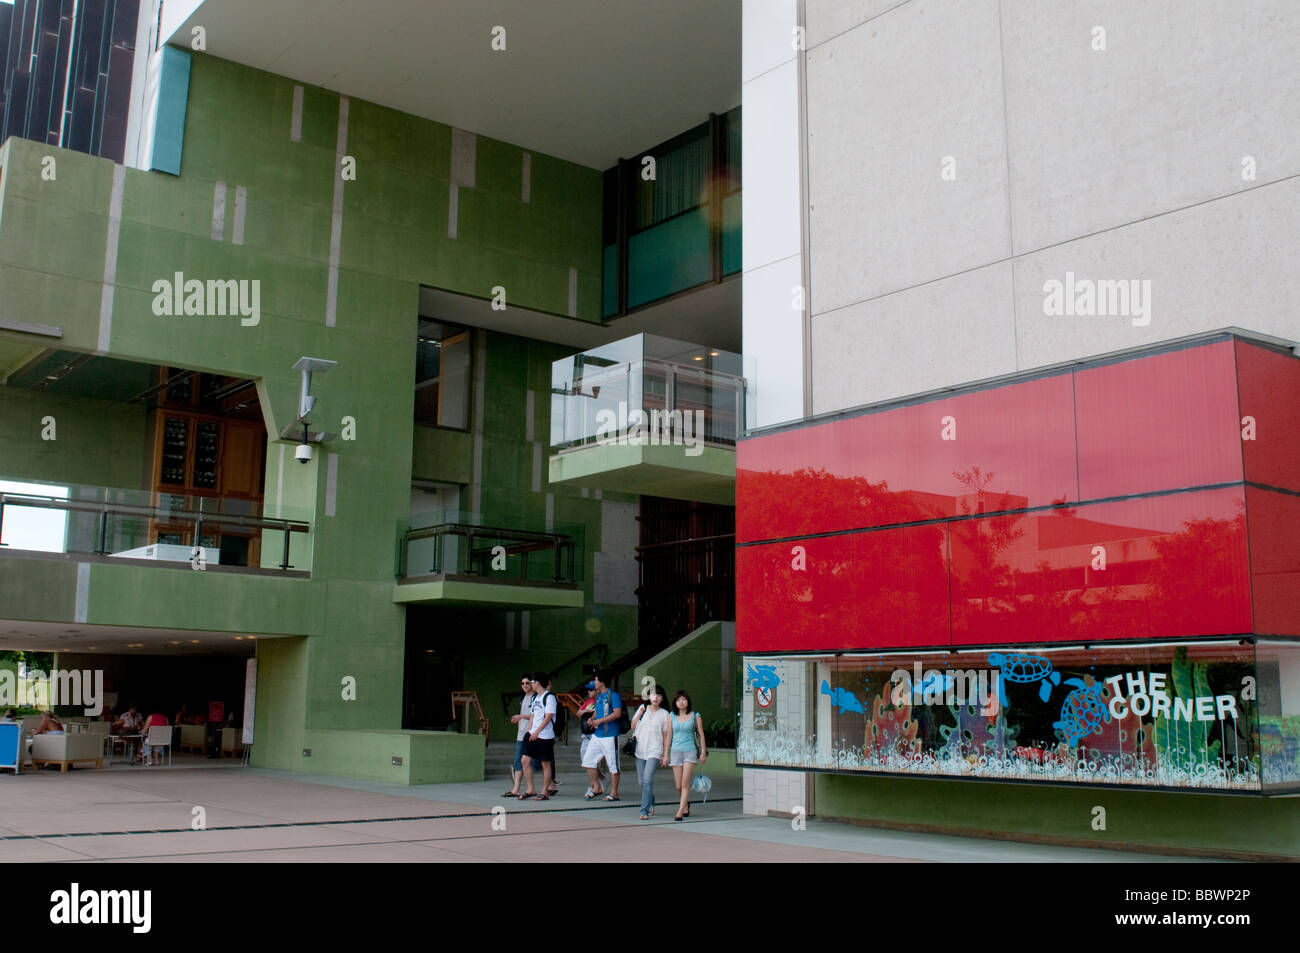 Exterior of GOMA, Gallery of Modern Art, Brisbane, Australia - Stock Image